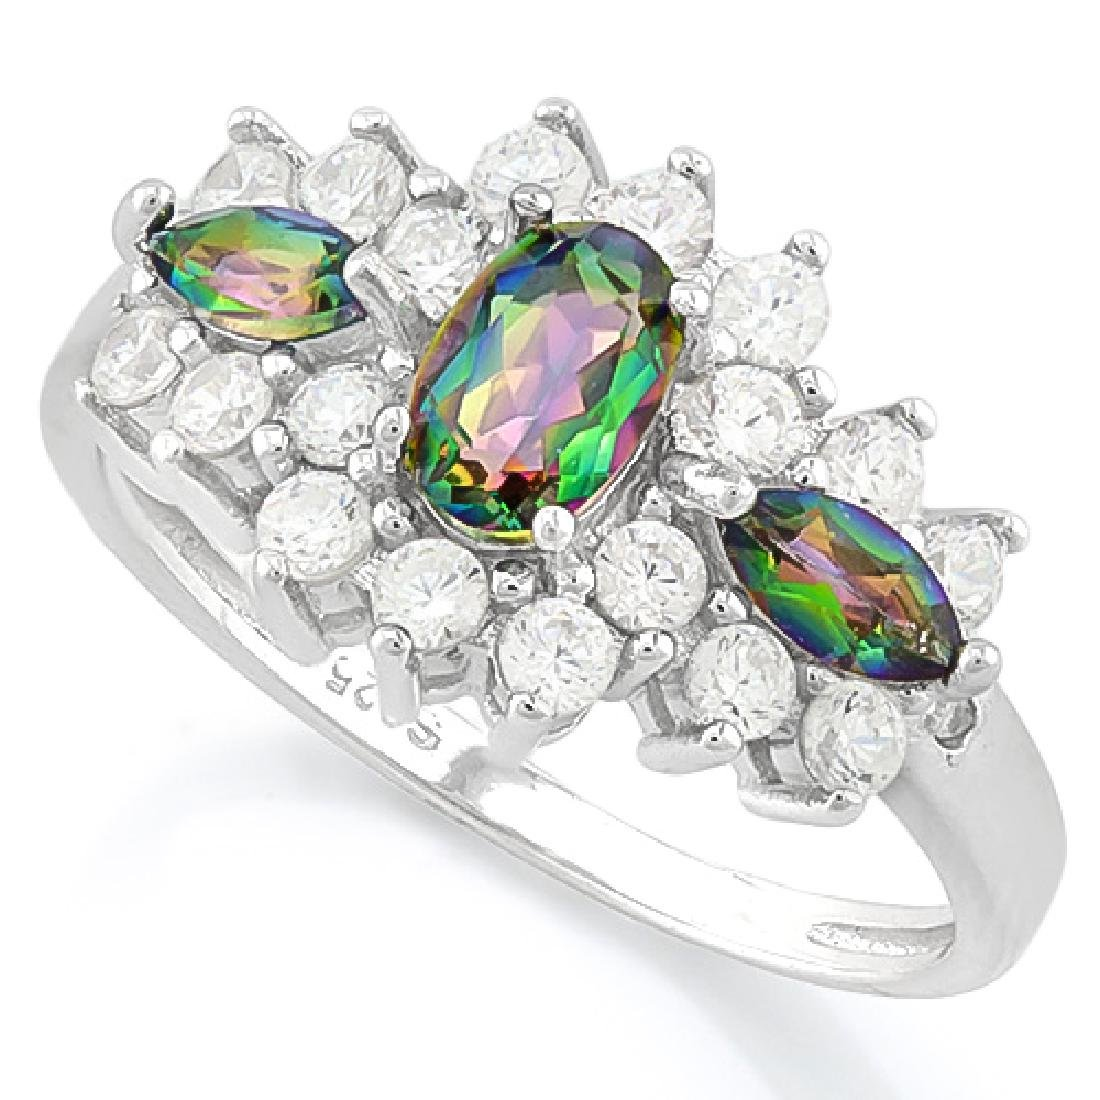 GREEN MYSTIC GEMSTONE 925 STERLING SILVER RING